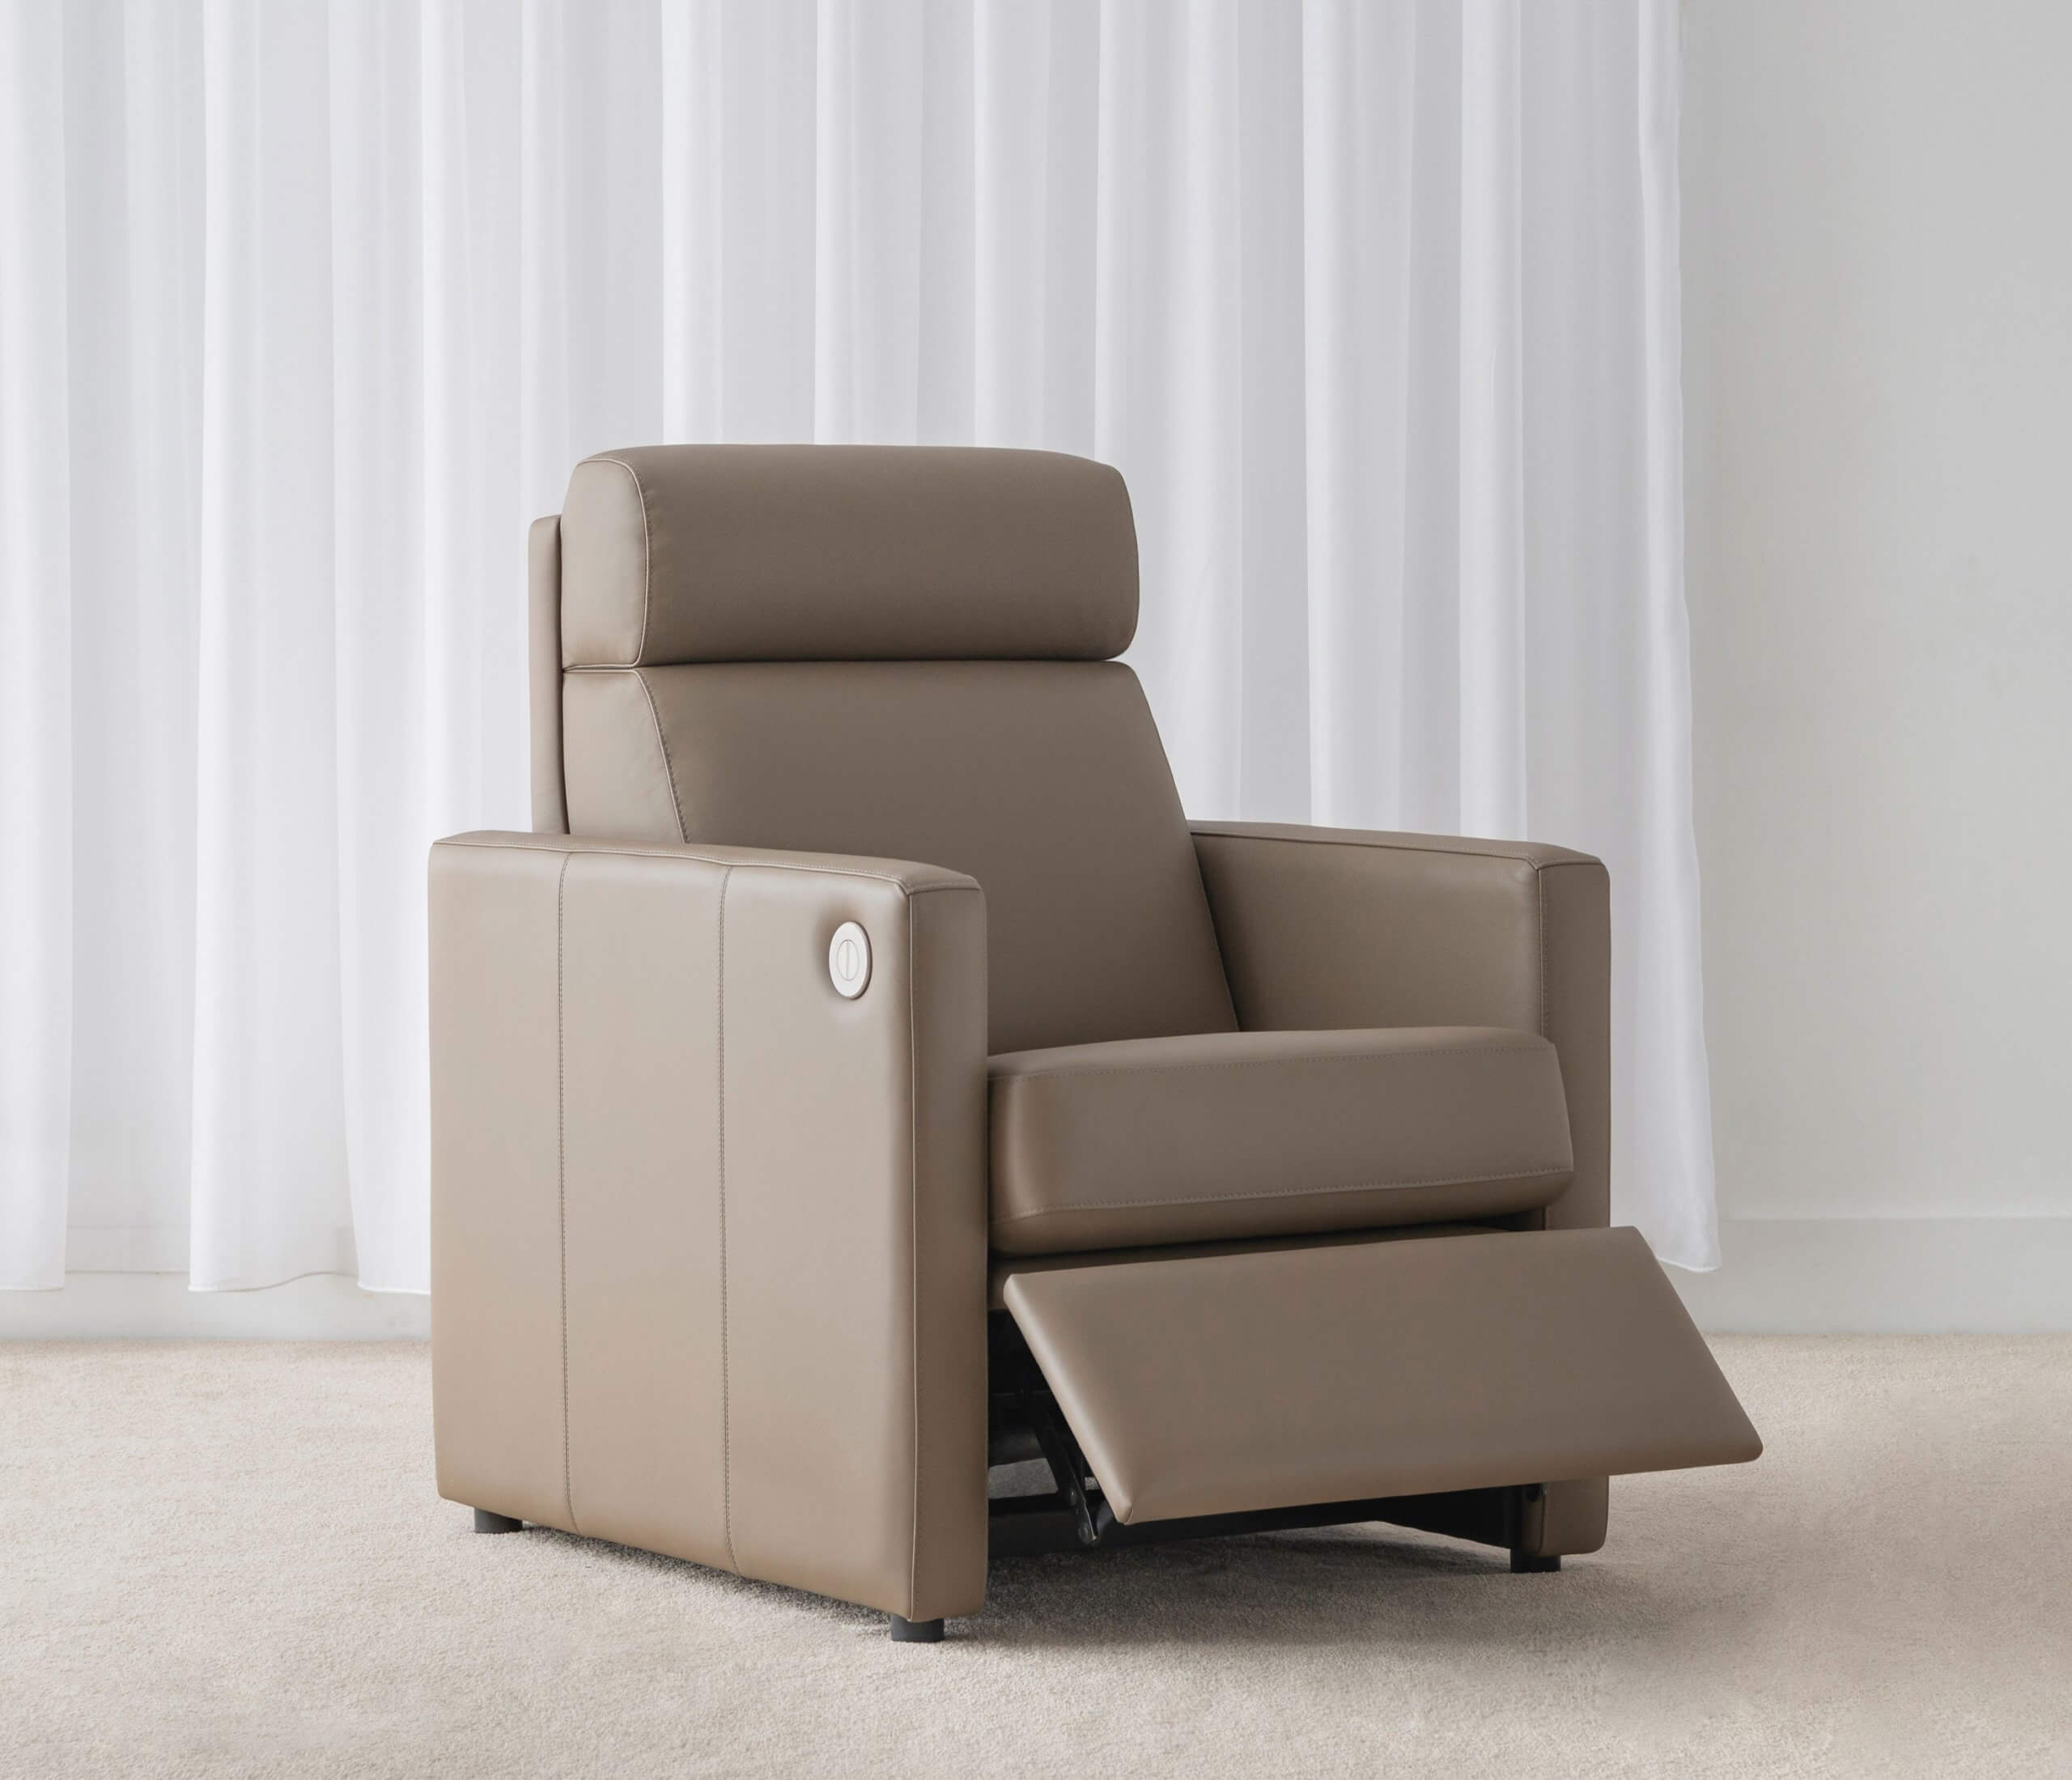 contemporary recliner chair with neutral leather and head roll